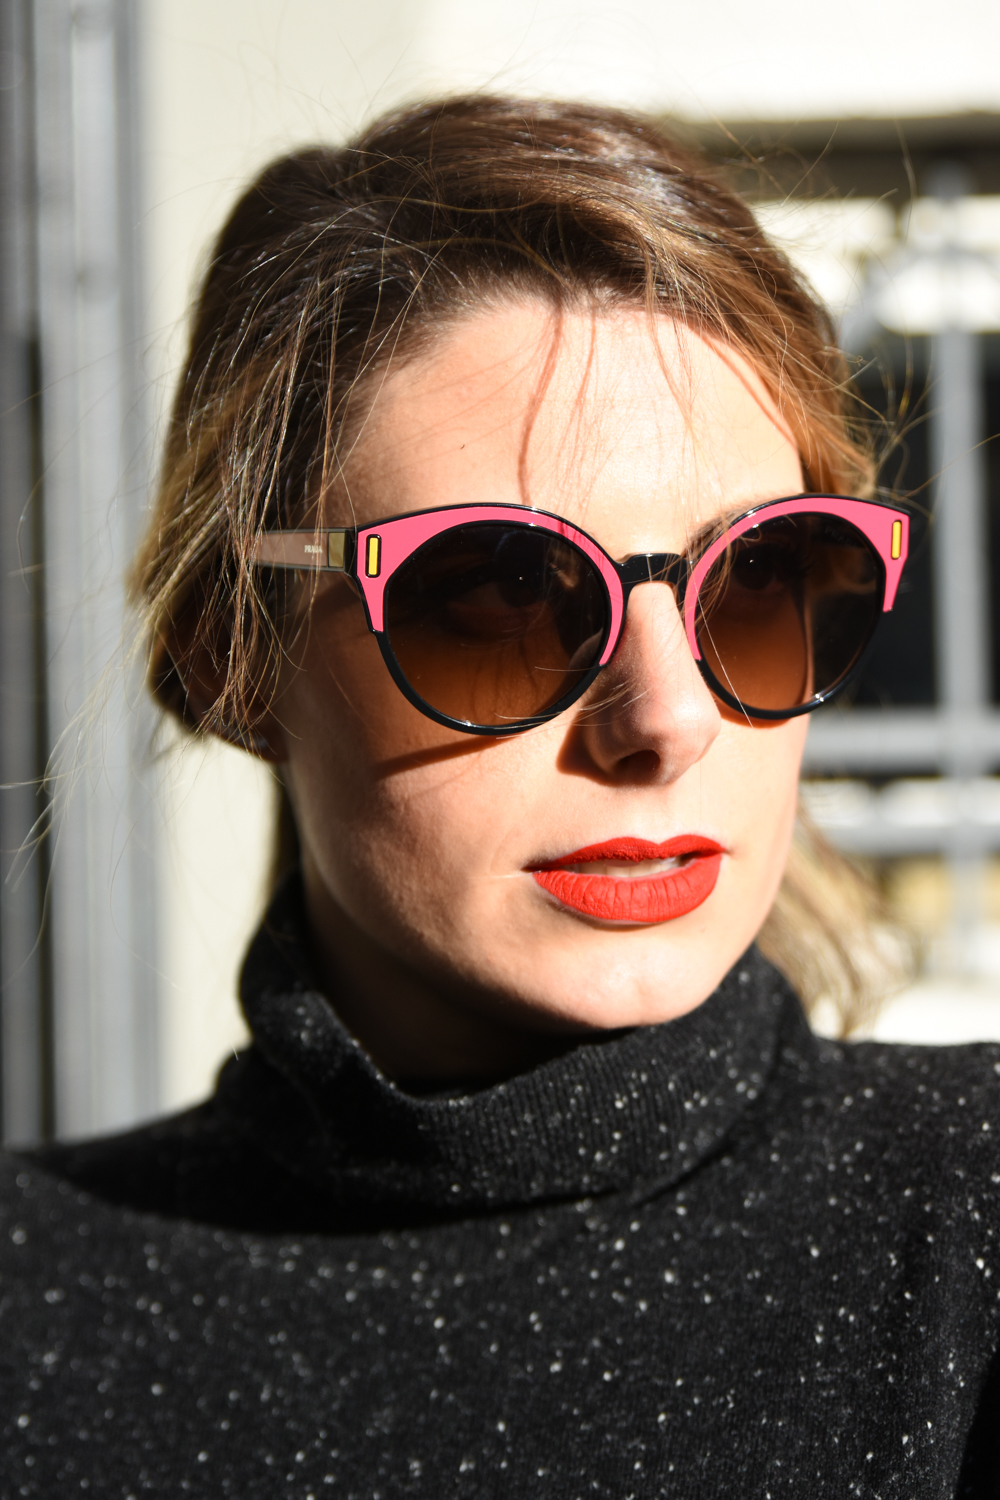 prada sunglasses fall winter 2017 2018 behidn my glasses ...